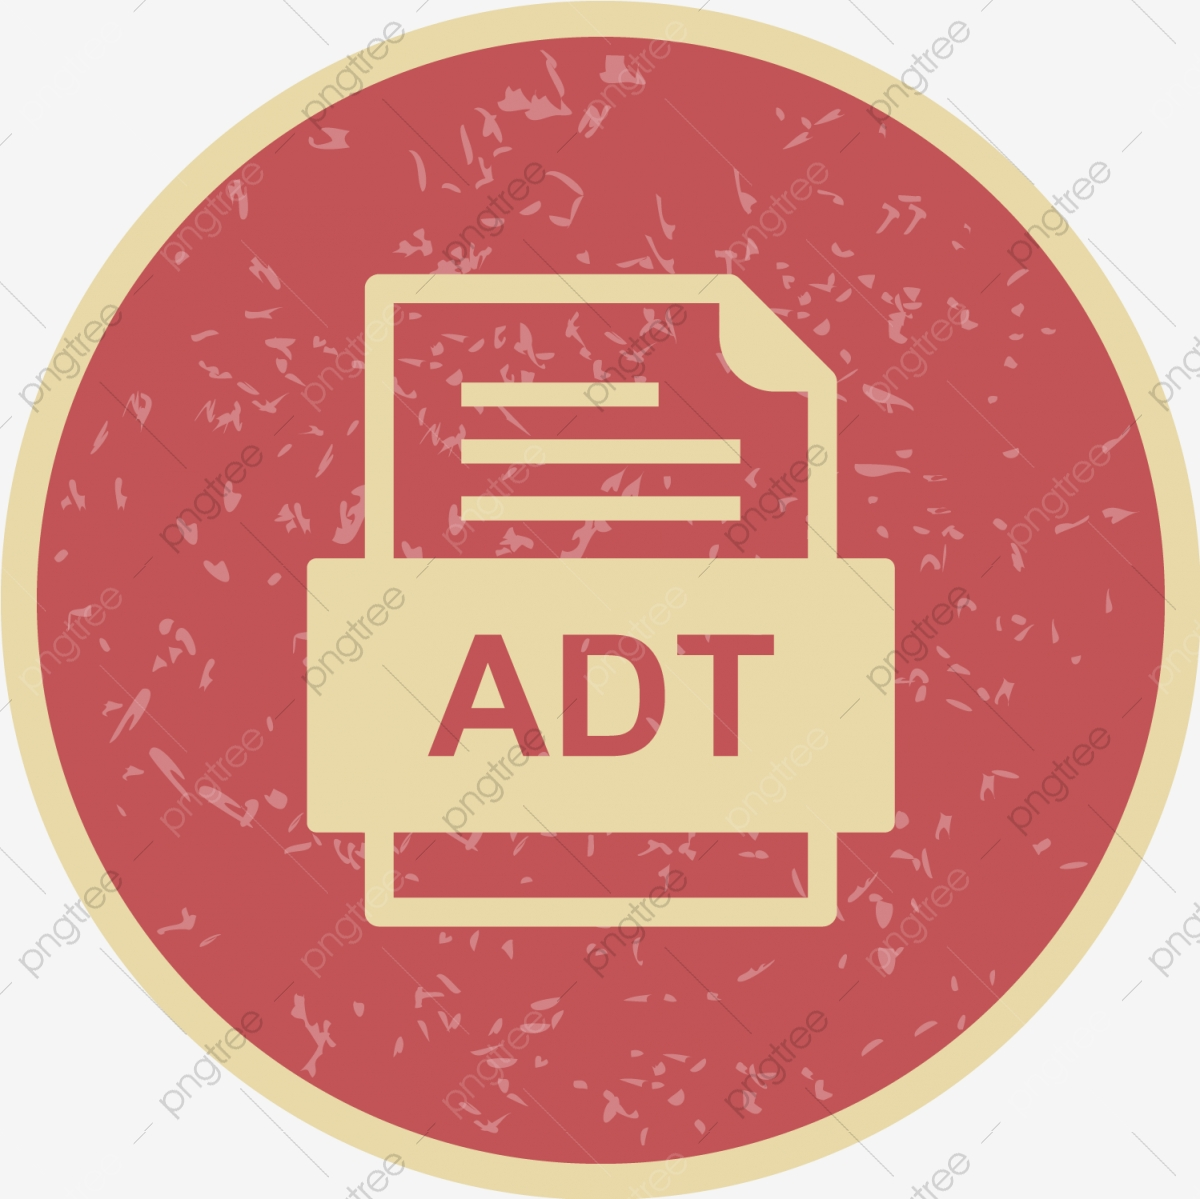 ADT File Document Icon Adt Document File PNG and Vector with 1200x1199